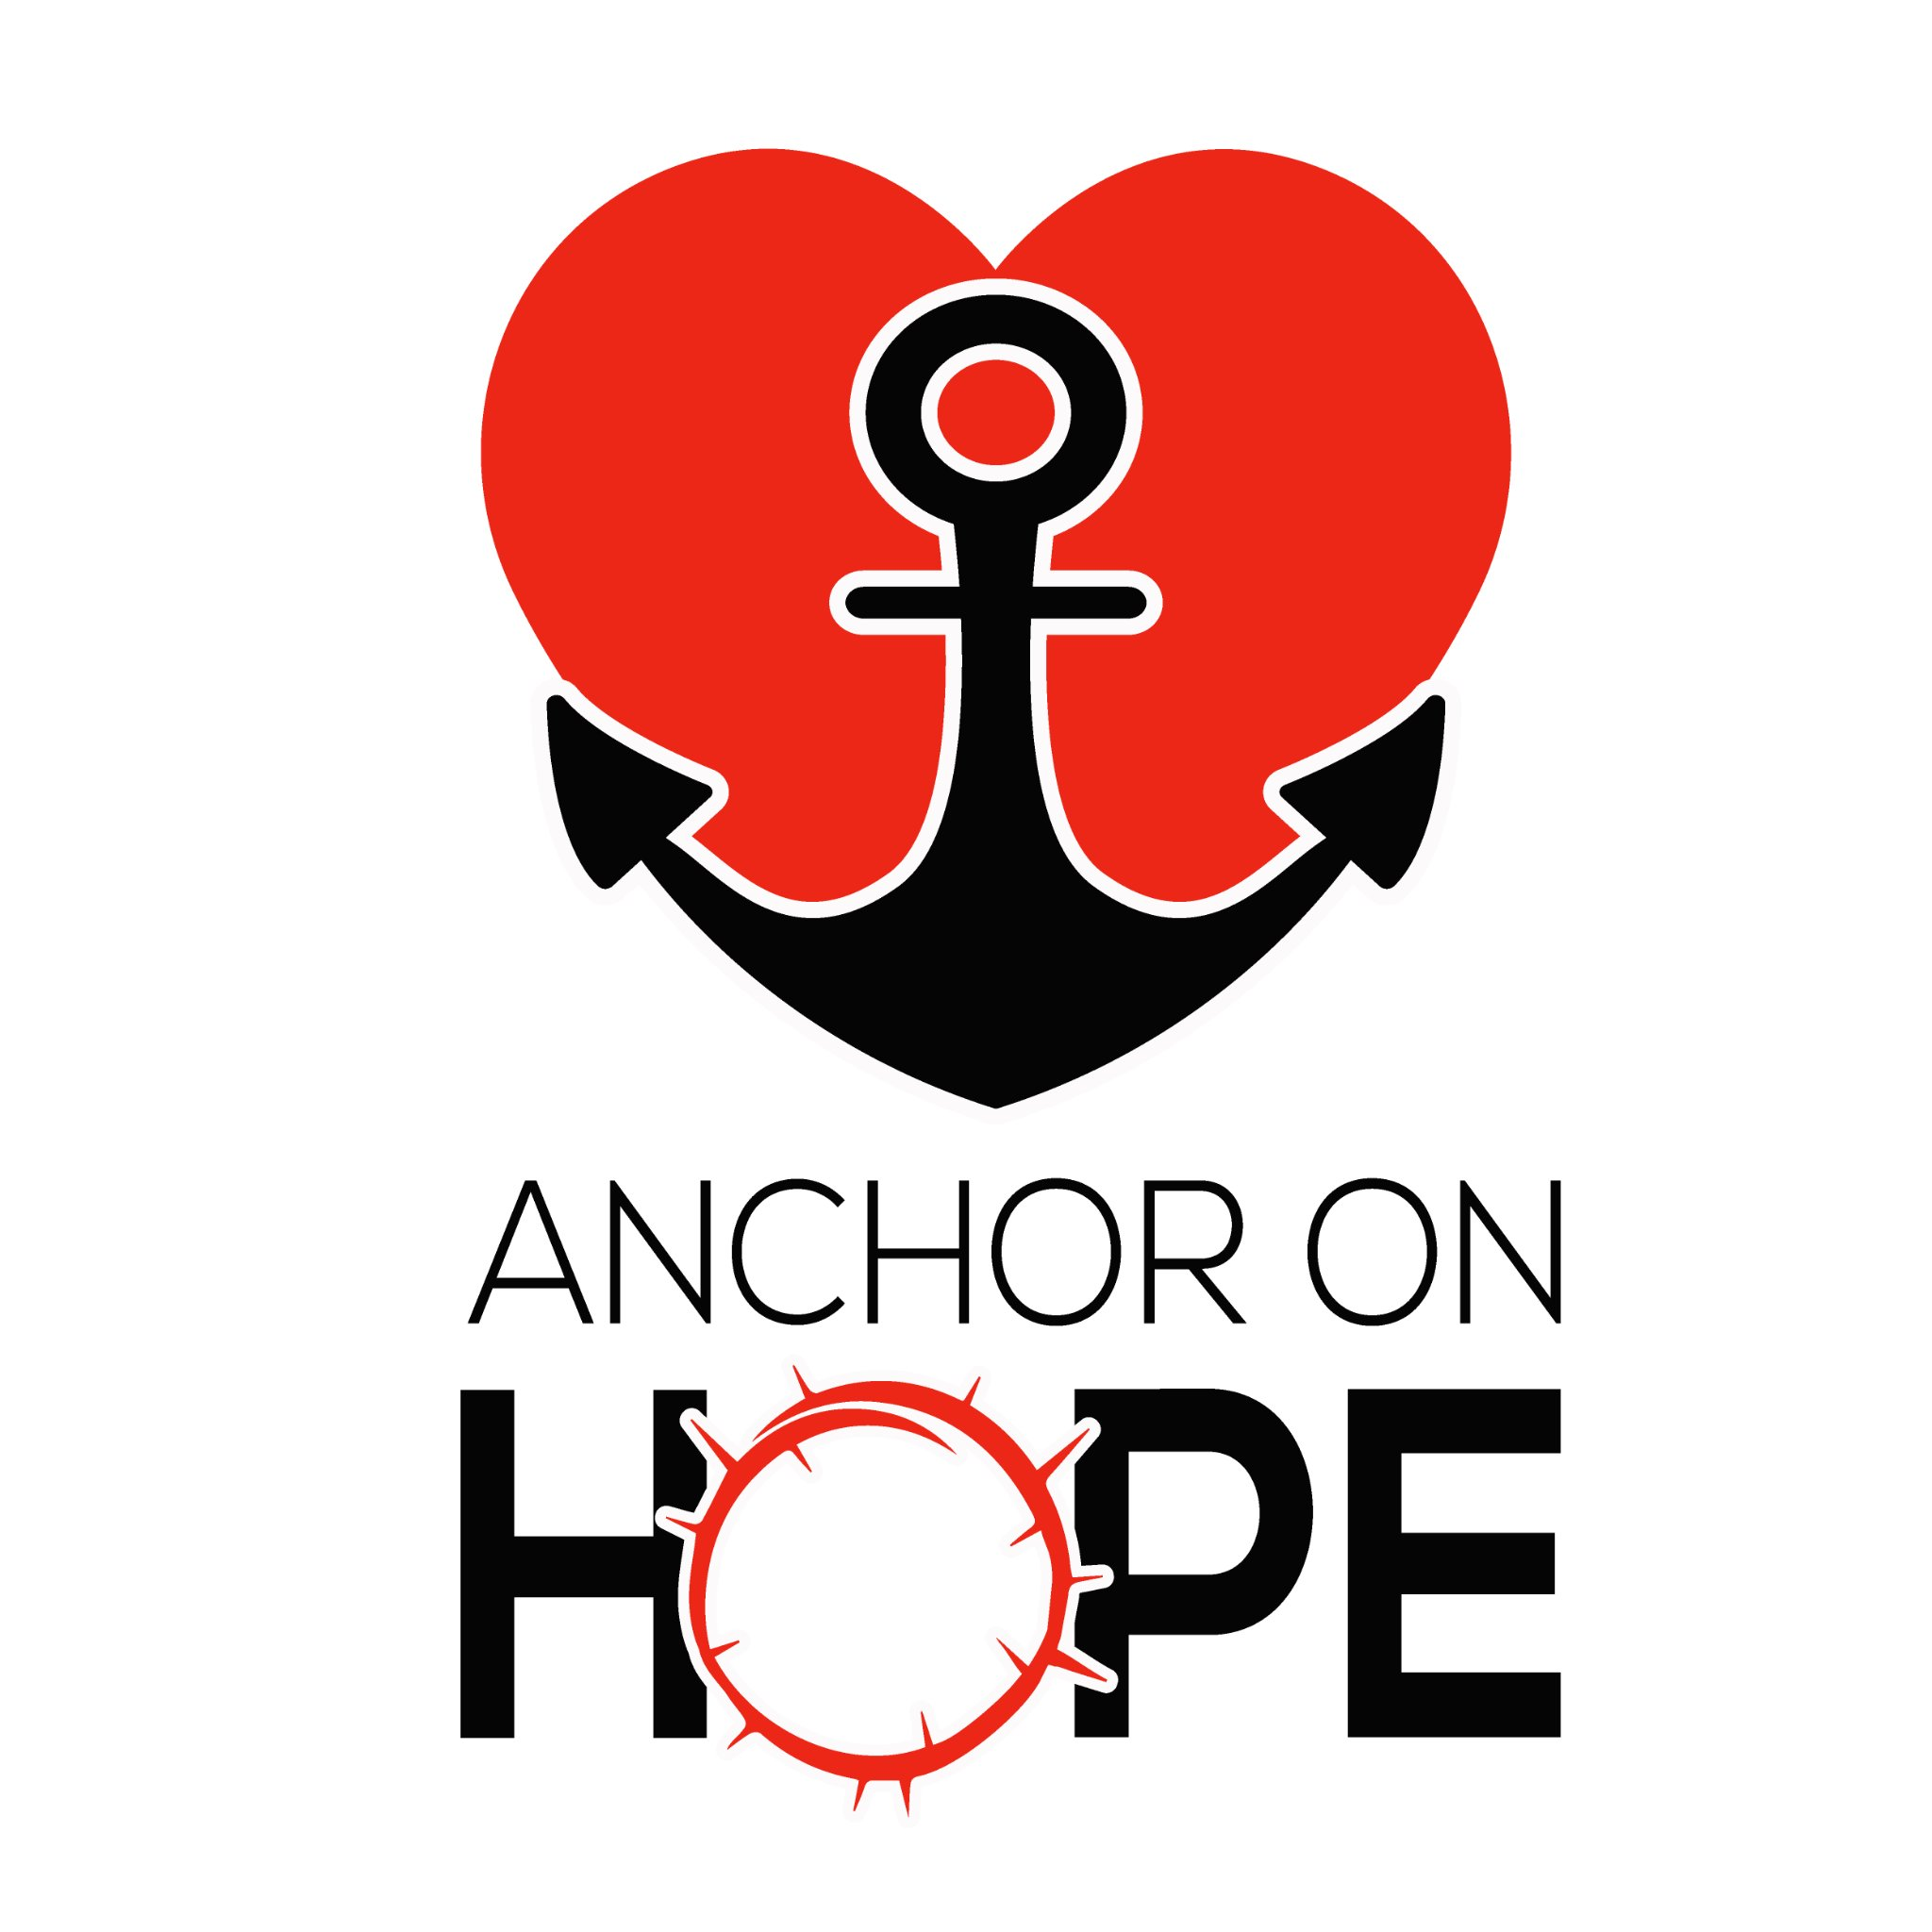 Anchor on hope anchoronhope twitter anchor on hope biocorpaavc Choice Image